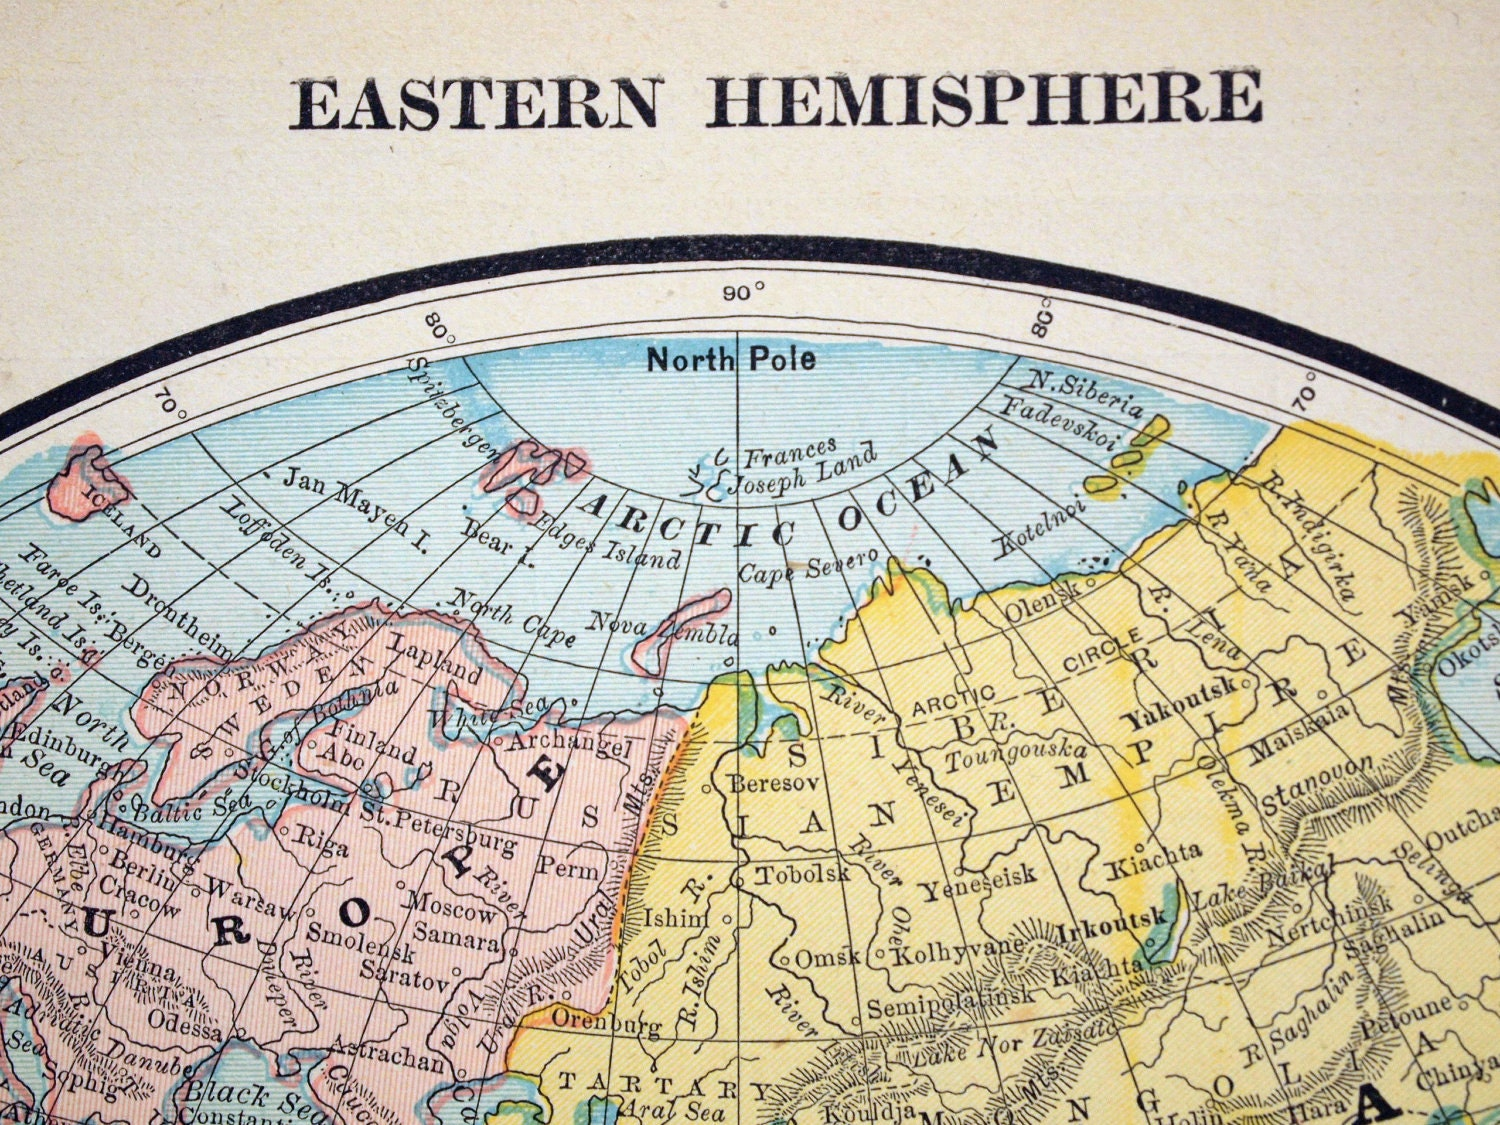 Eastern Hemisphere Map With Names 1888 Antique Ma...